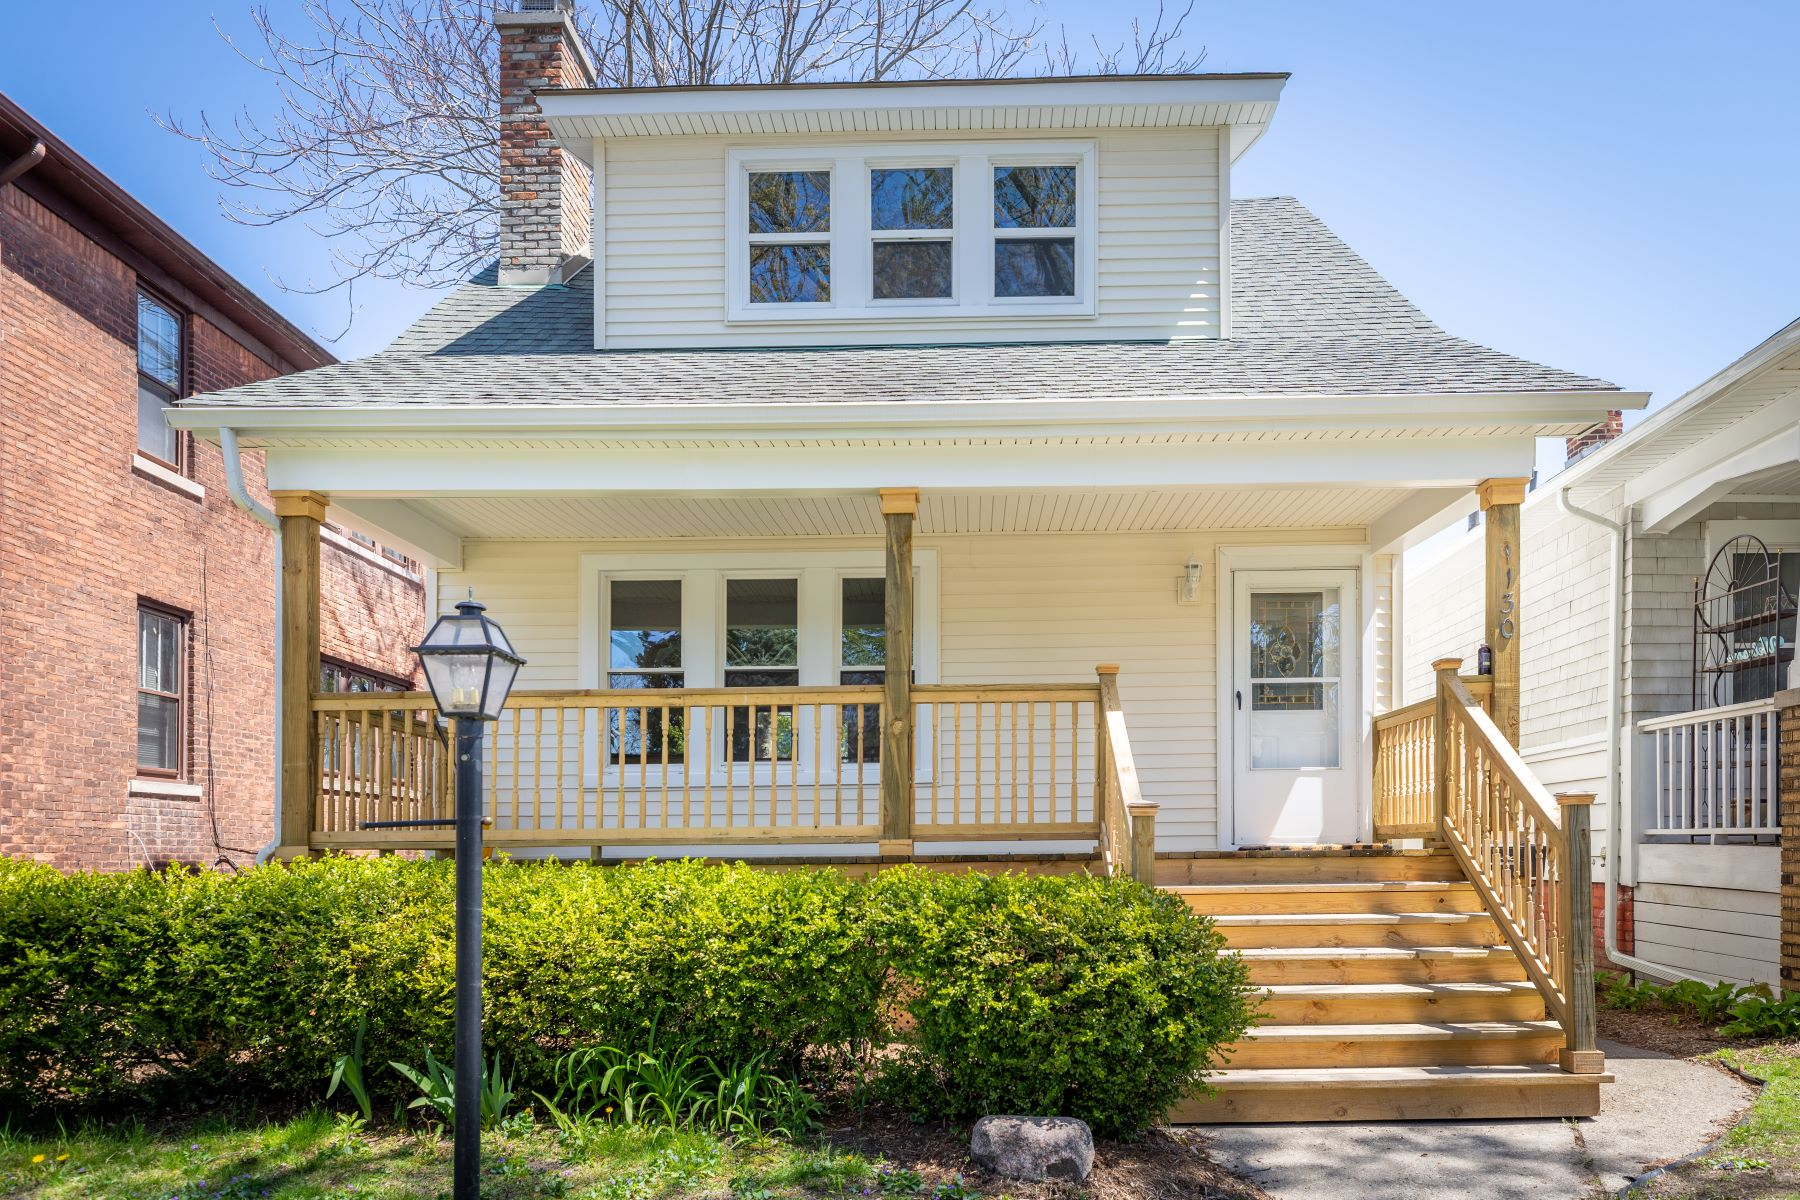 Single Family Homes for Sale at Grosse Pointe Park 1130 Wayburn St Grosse Pointe Park, Michigan 48230 United States